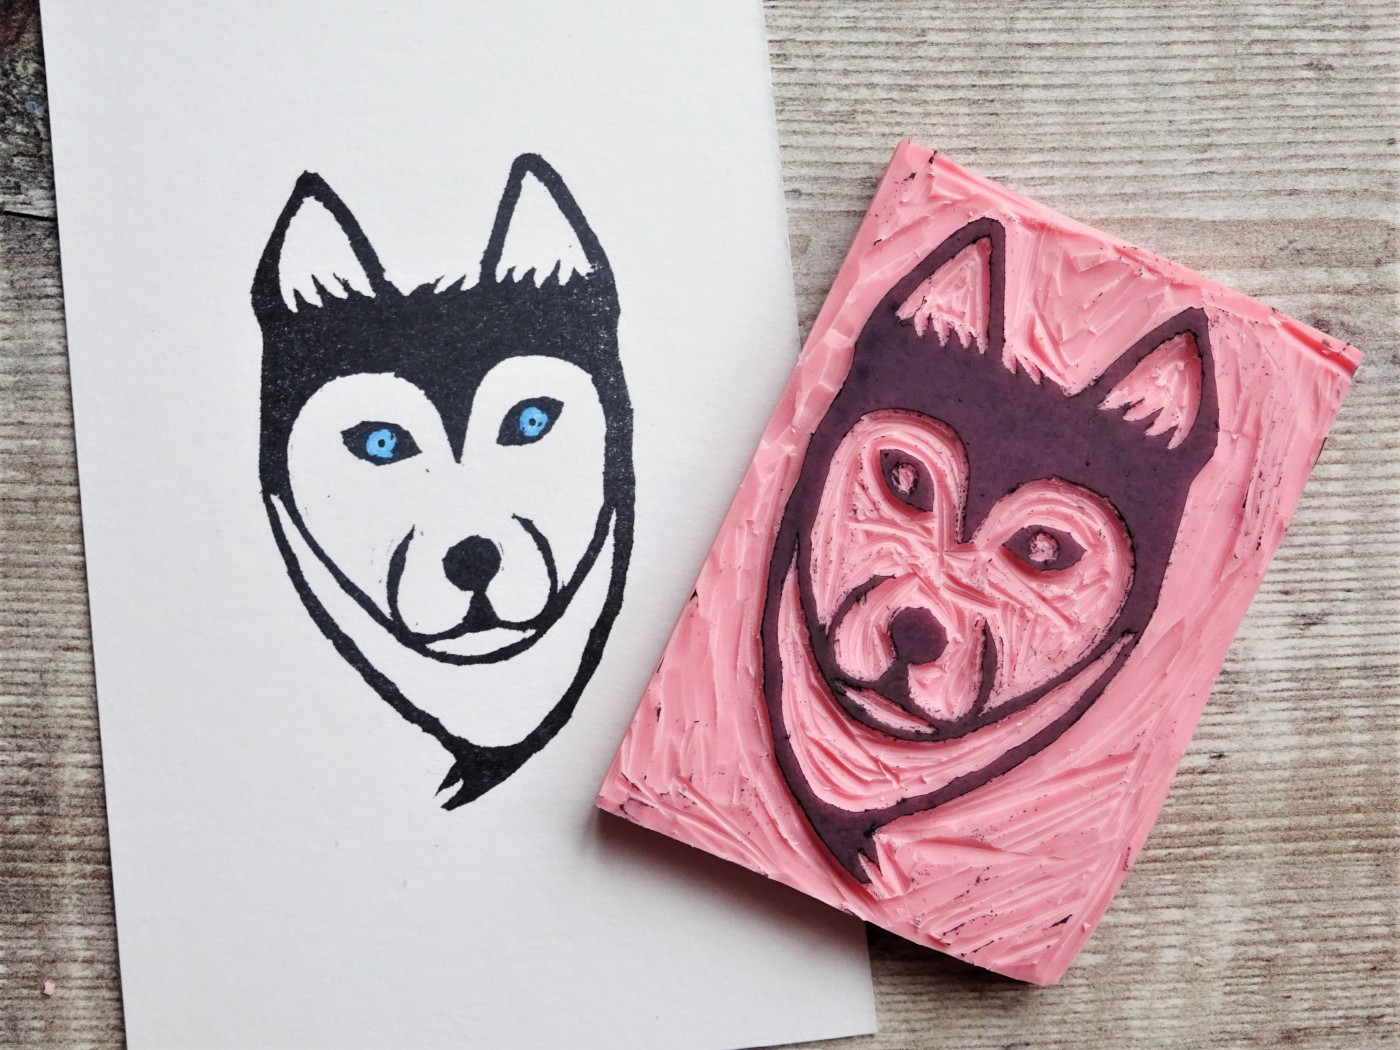 Stamp carving Lino cutting for beginners